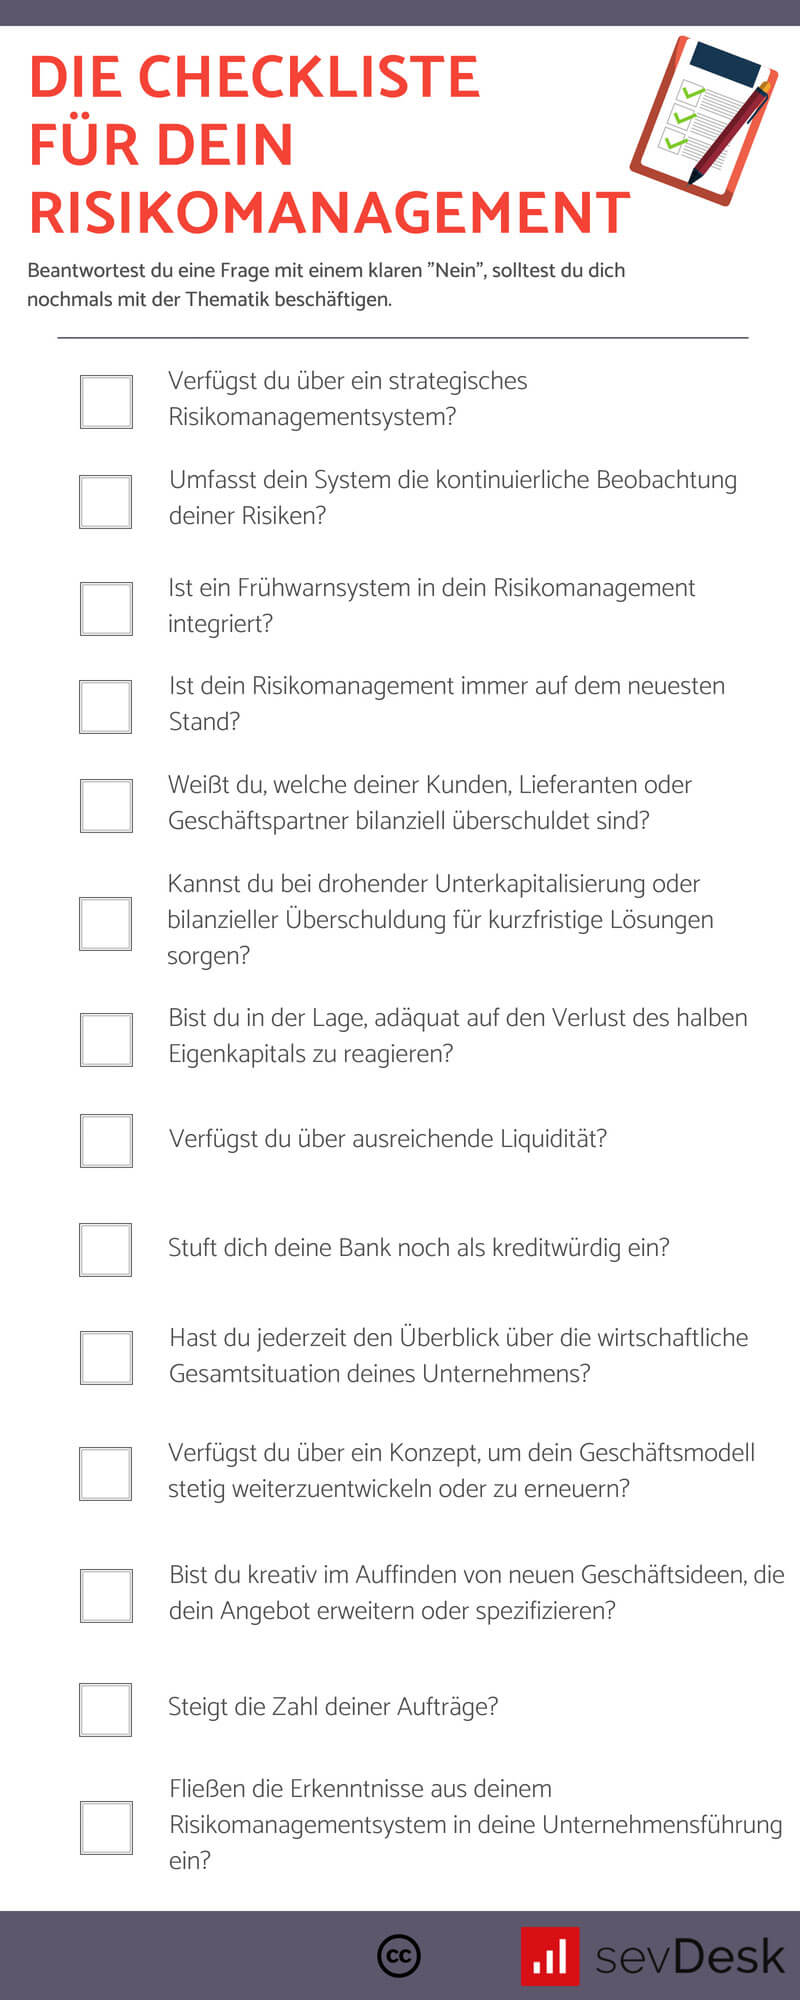 Checkliste für Risikomanagement